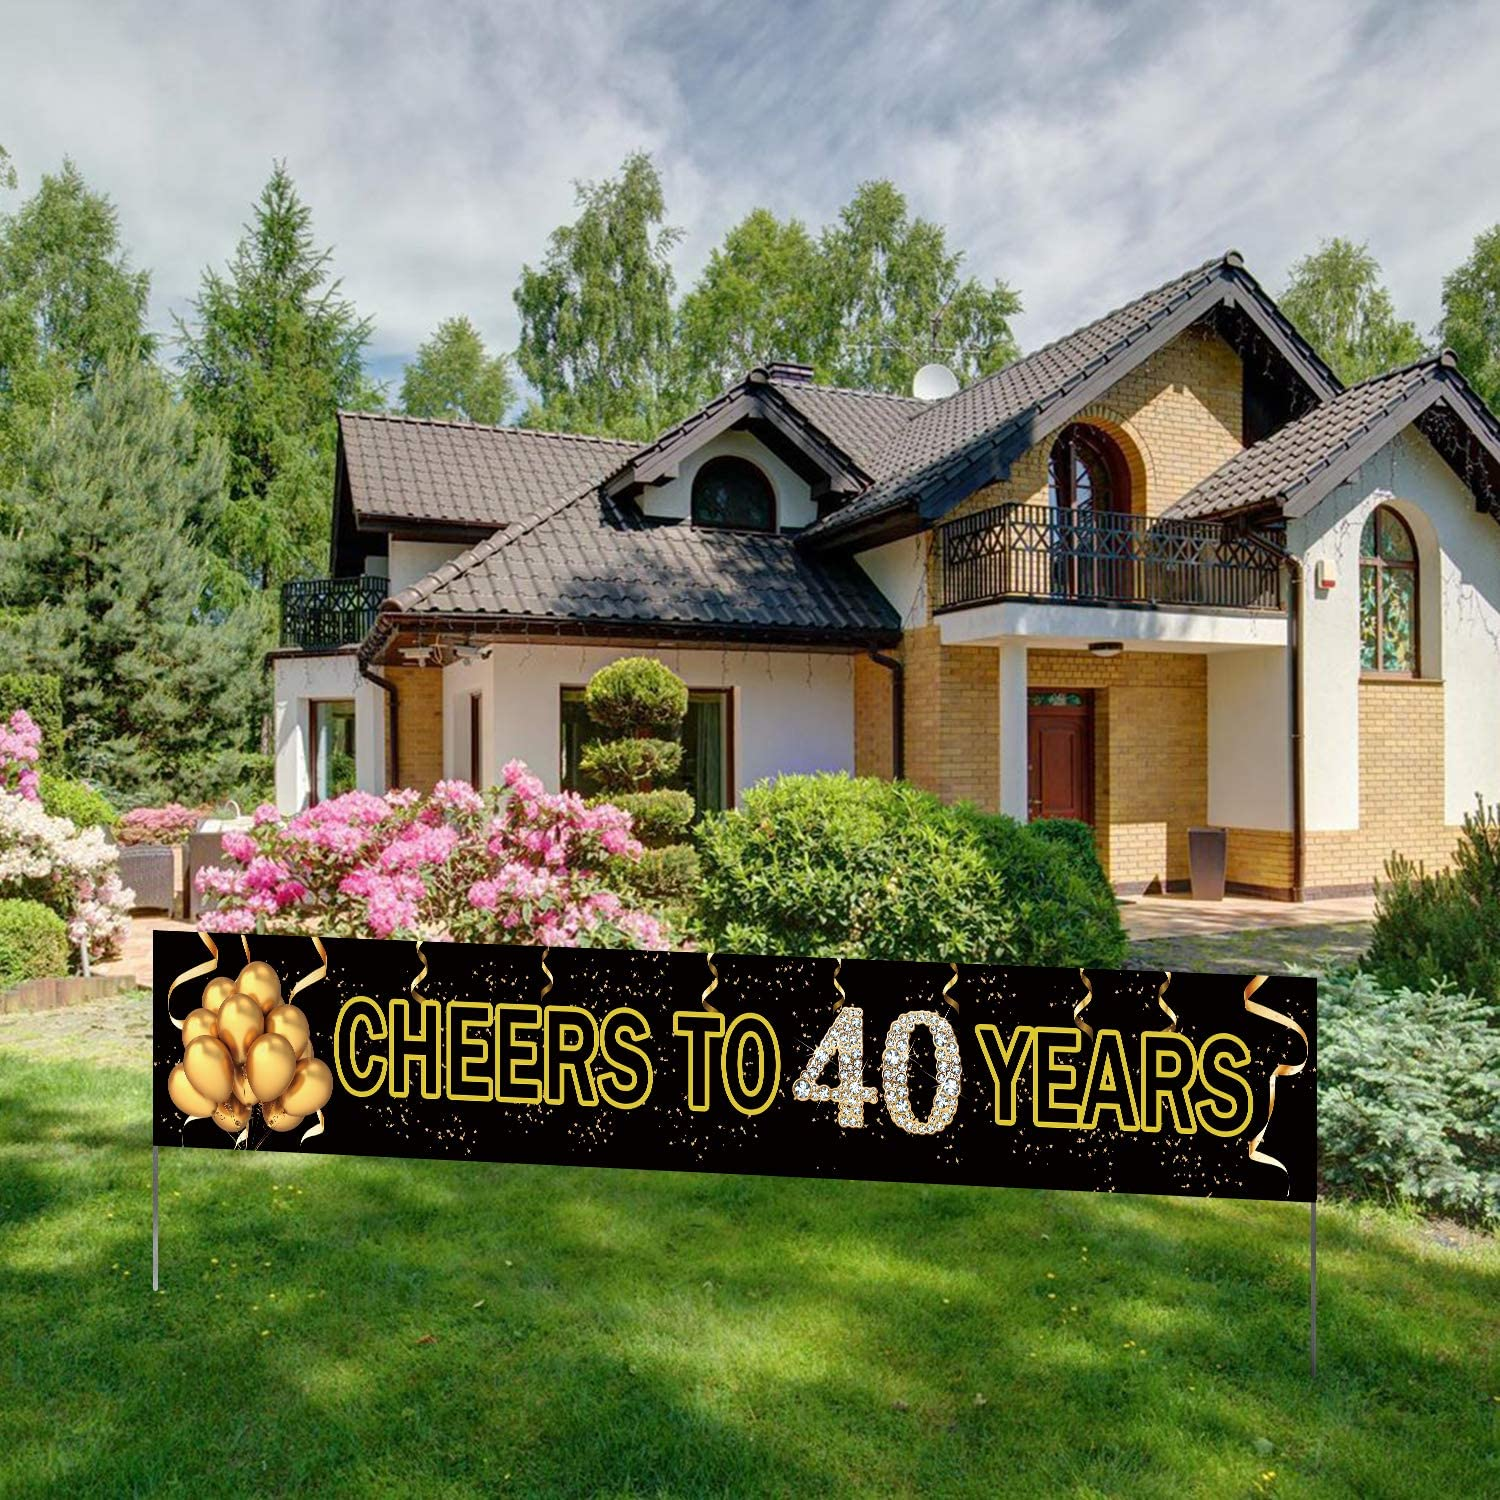 Large Cheers to 40 Years Banner, Black Gold 40 Anniversary Party Sign, 40th Happy Birthday Banner(9.8feet X 1.6feet)